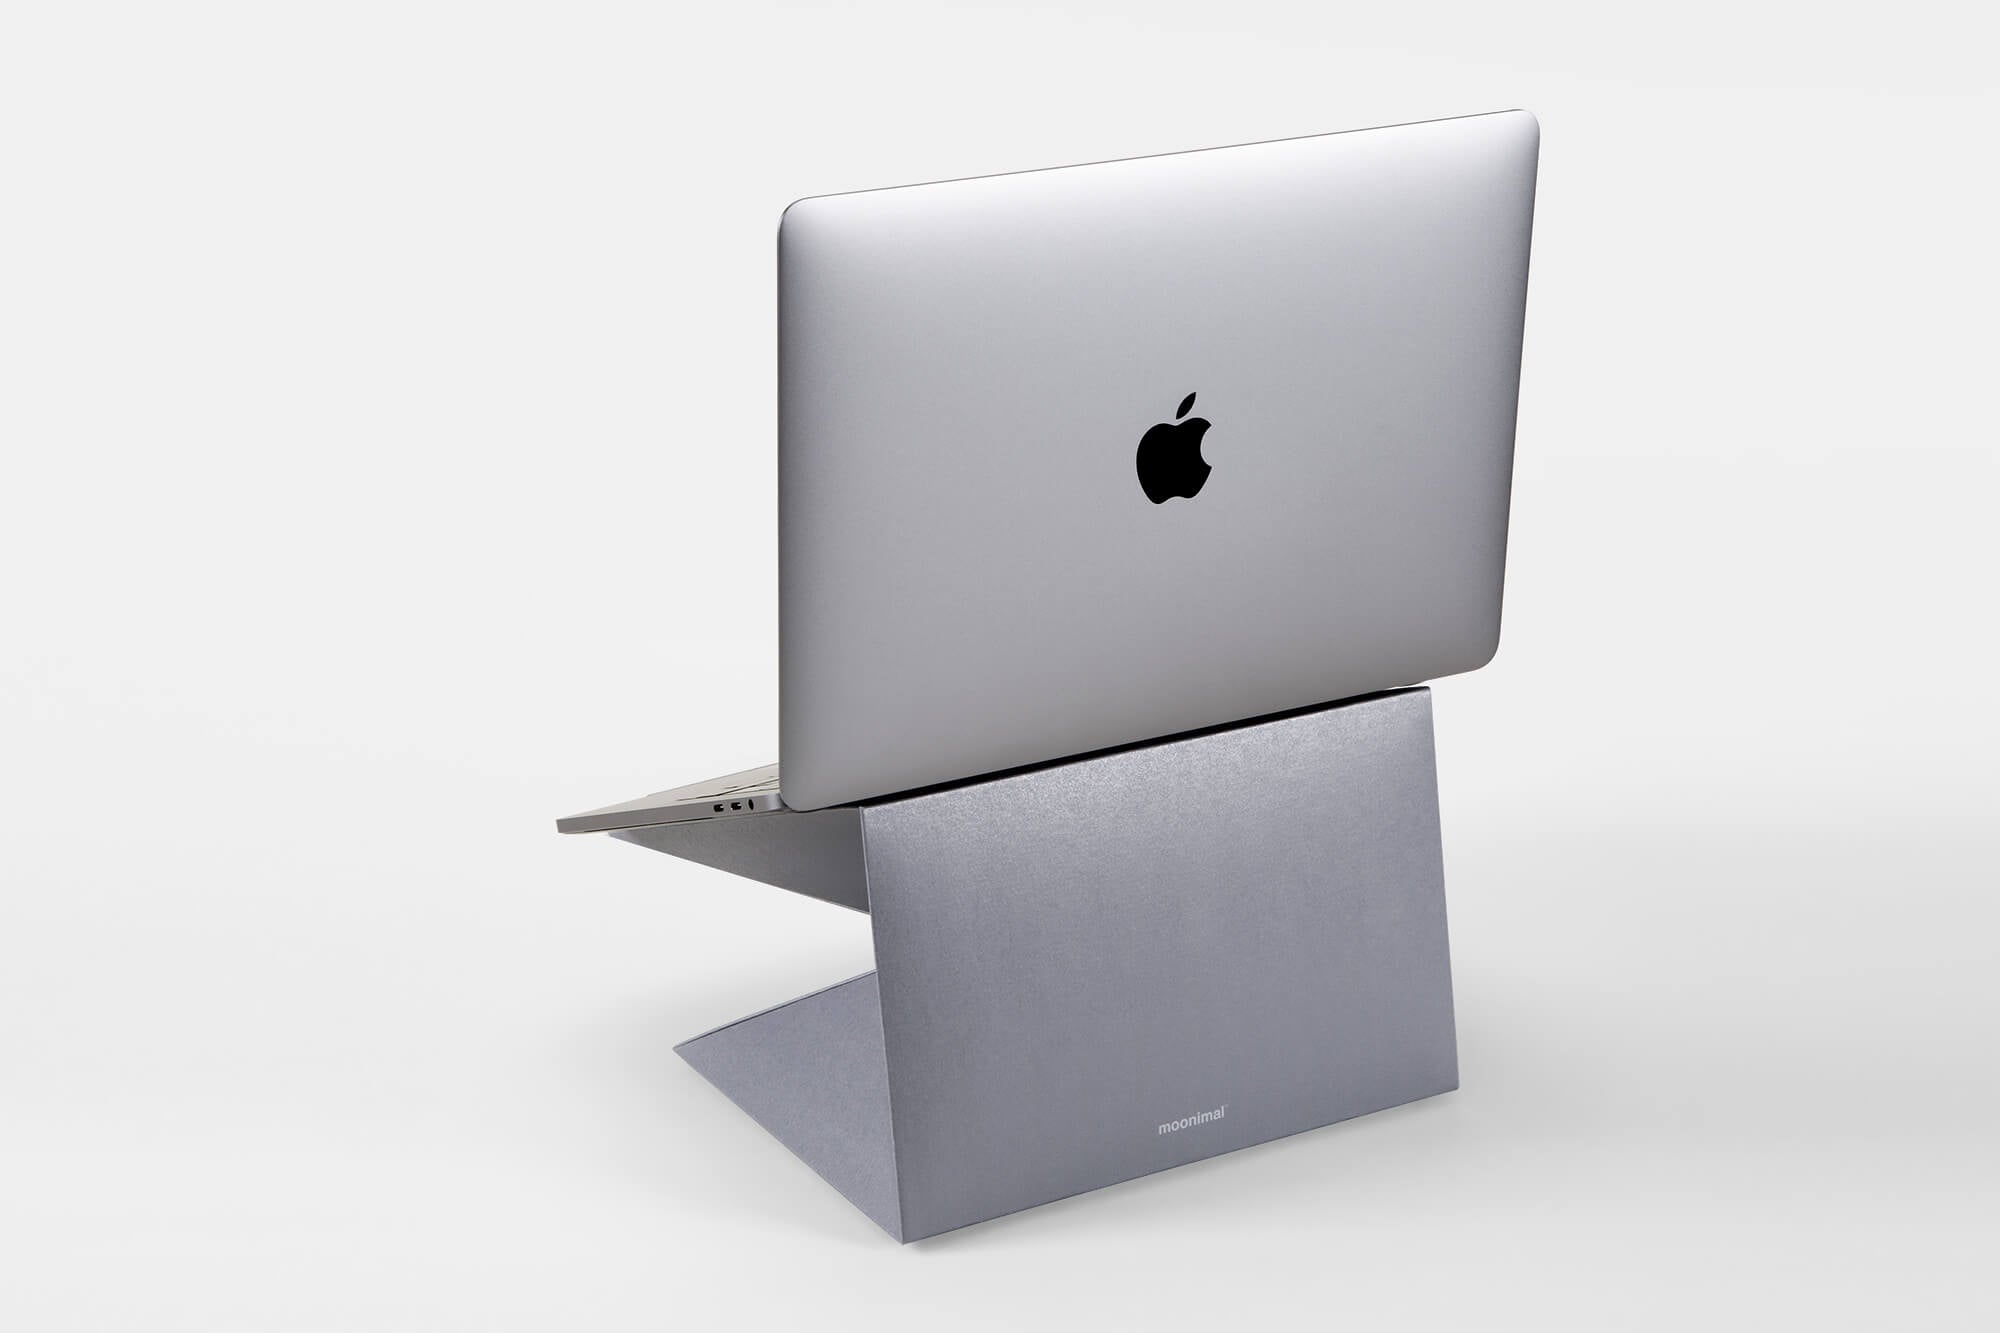 Space gray laptop stand for Macbook